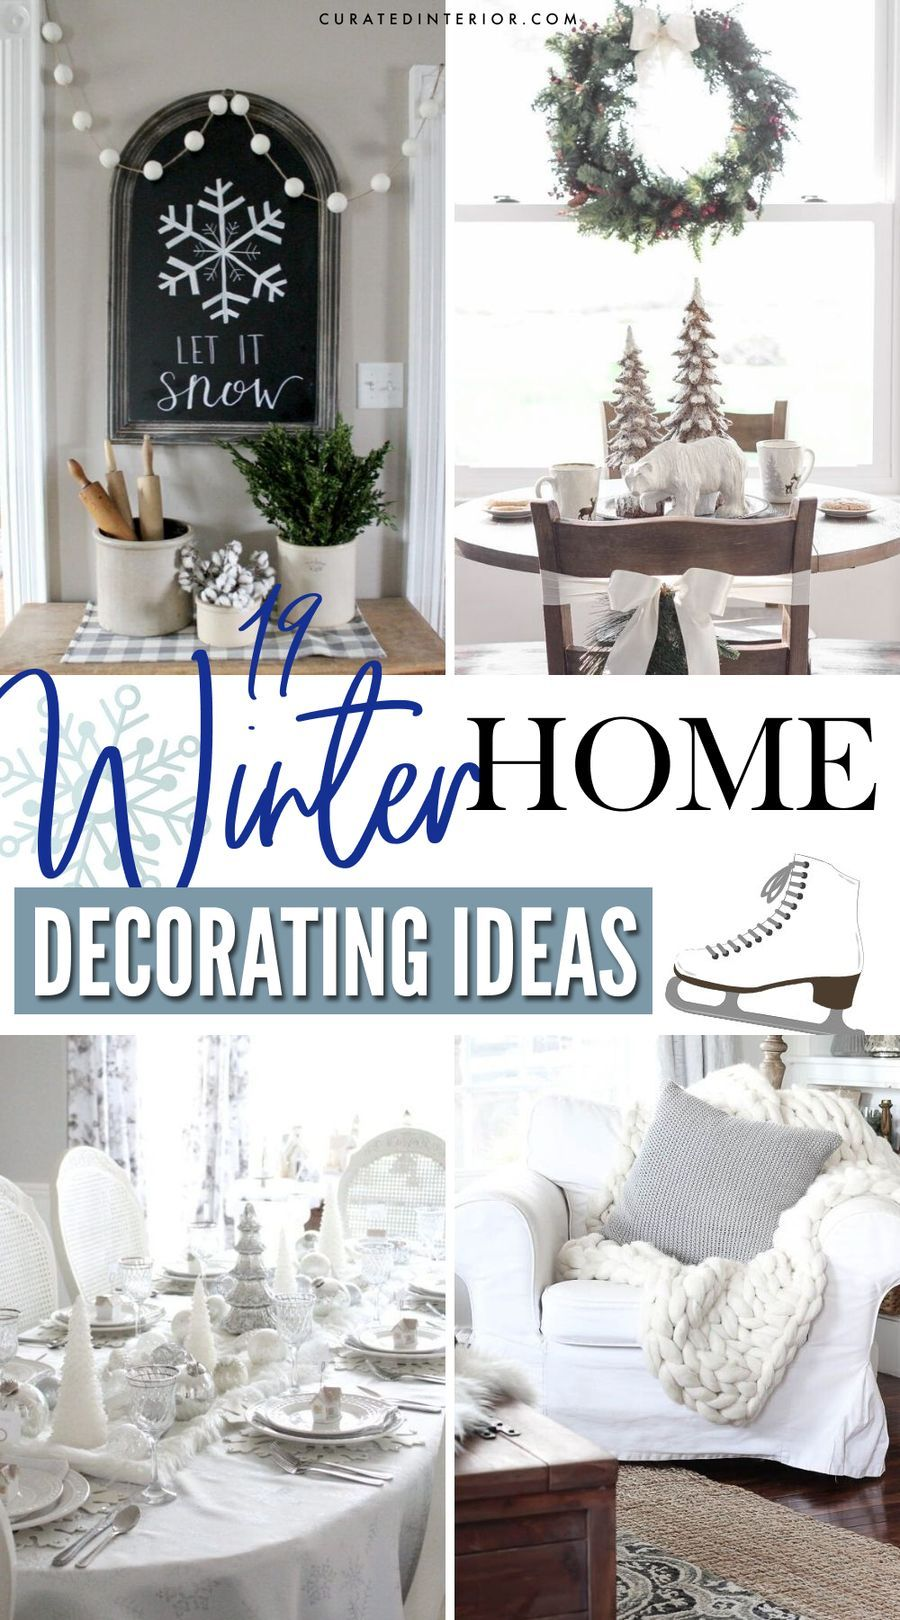 19 Winter Home Decorating Ideas